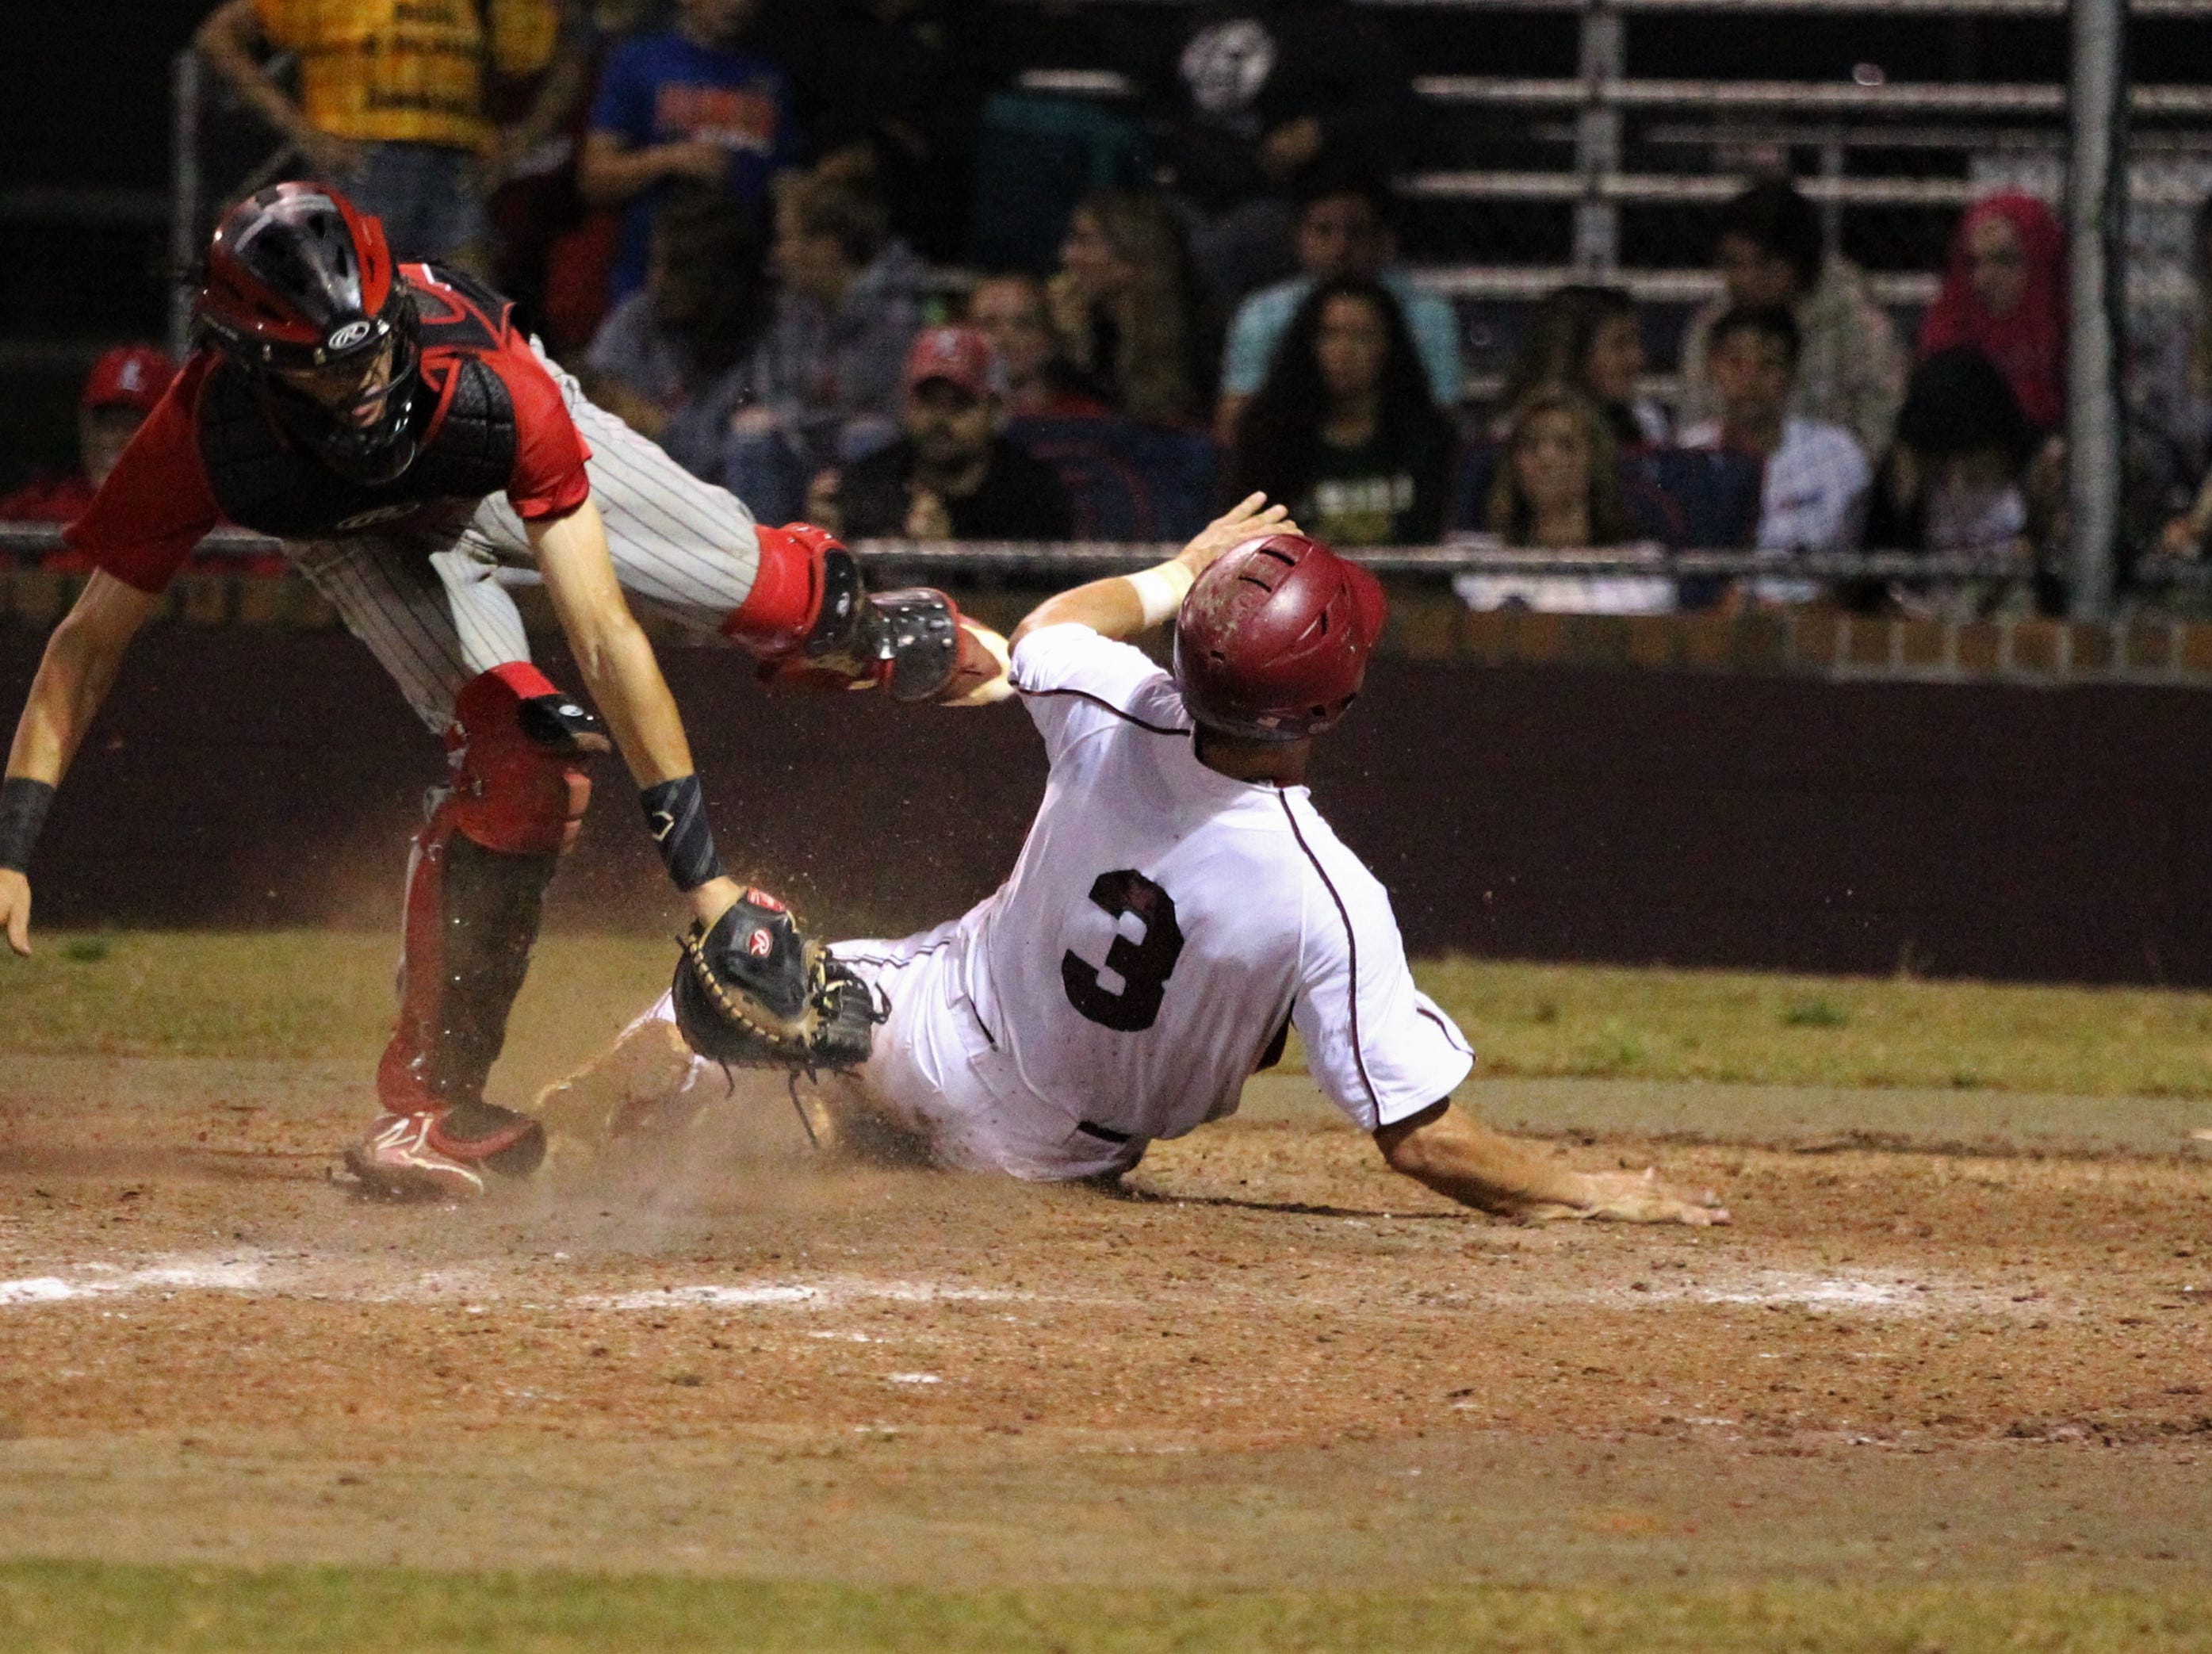 Chiles junior Garrett Green collides with Leon catcher Nick Flynt on a play at the plate but safely touches home as Chiles won an 11-6 home game against Leon on Friday, April 5, 2019, to force a season split. The Lions won 3-0 earlier in the week.